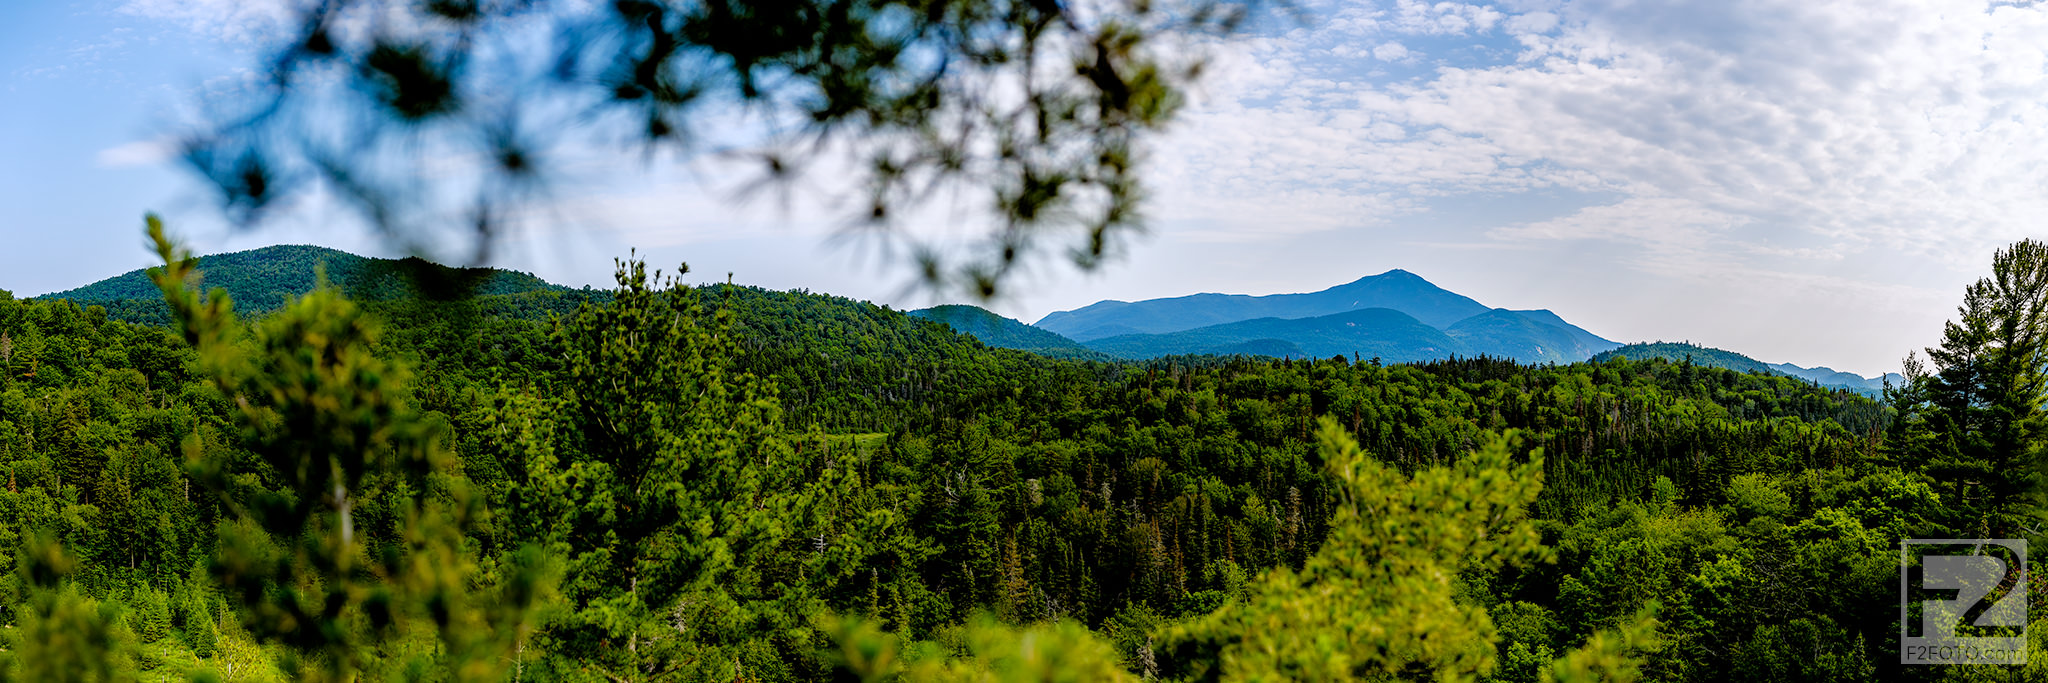 Eastern-White-Pine-Tree-Climb-Panorama_1.jpg